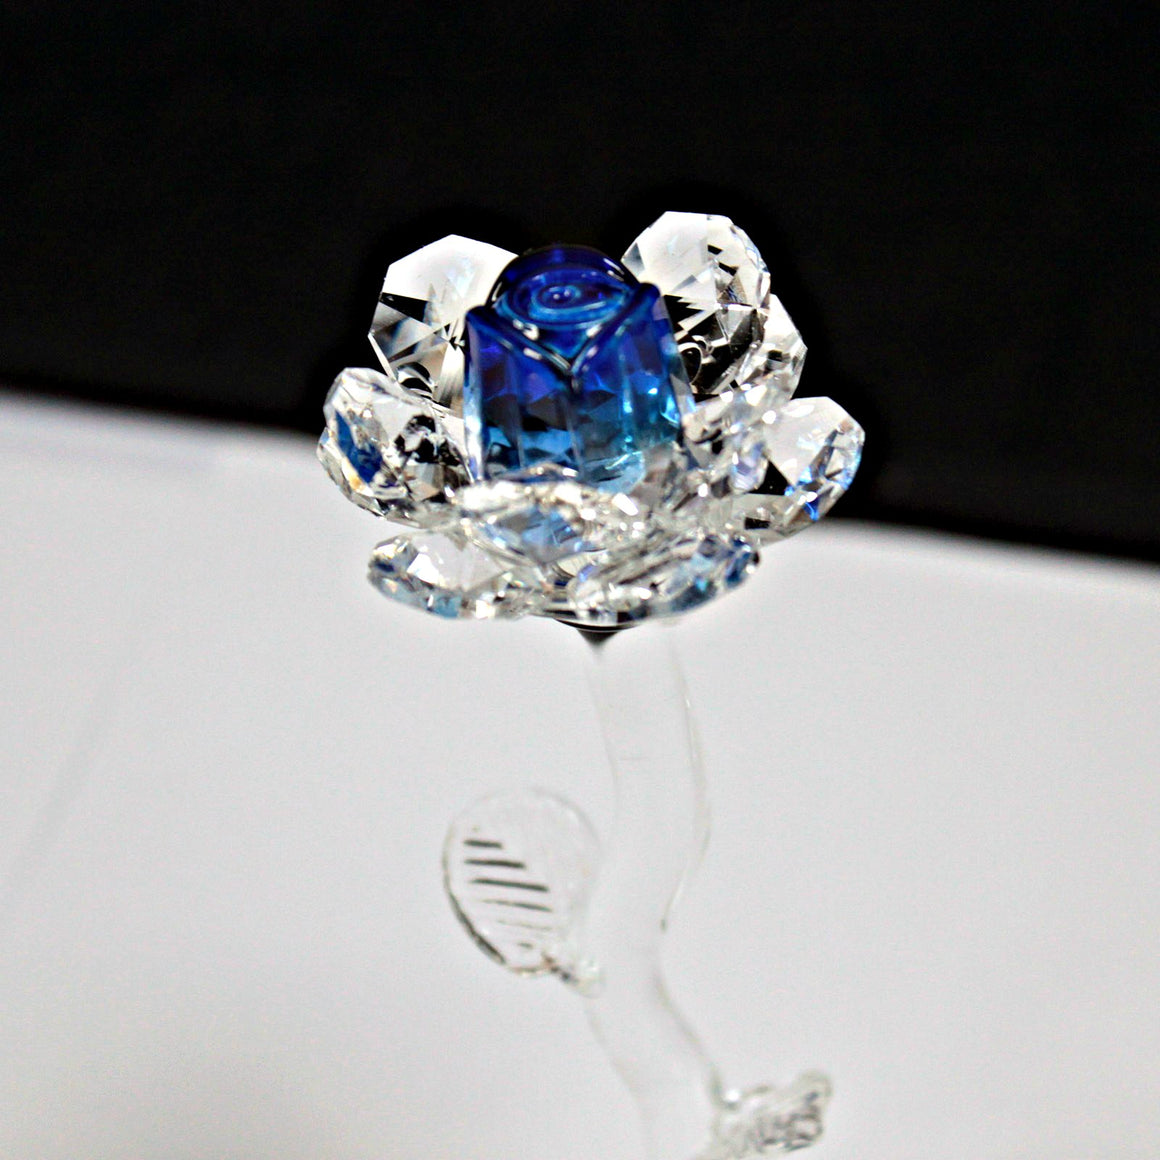 Star Crystal Rose - Blue